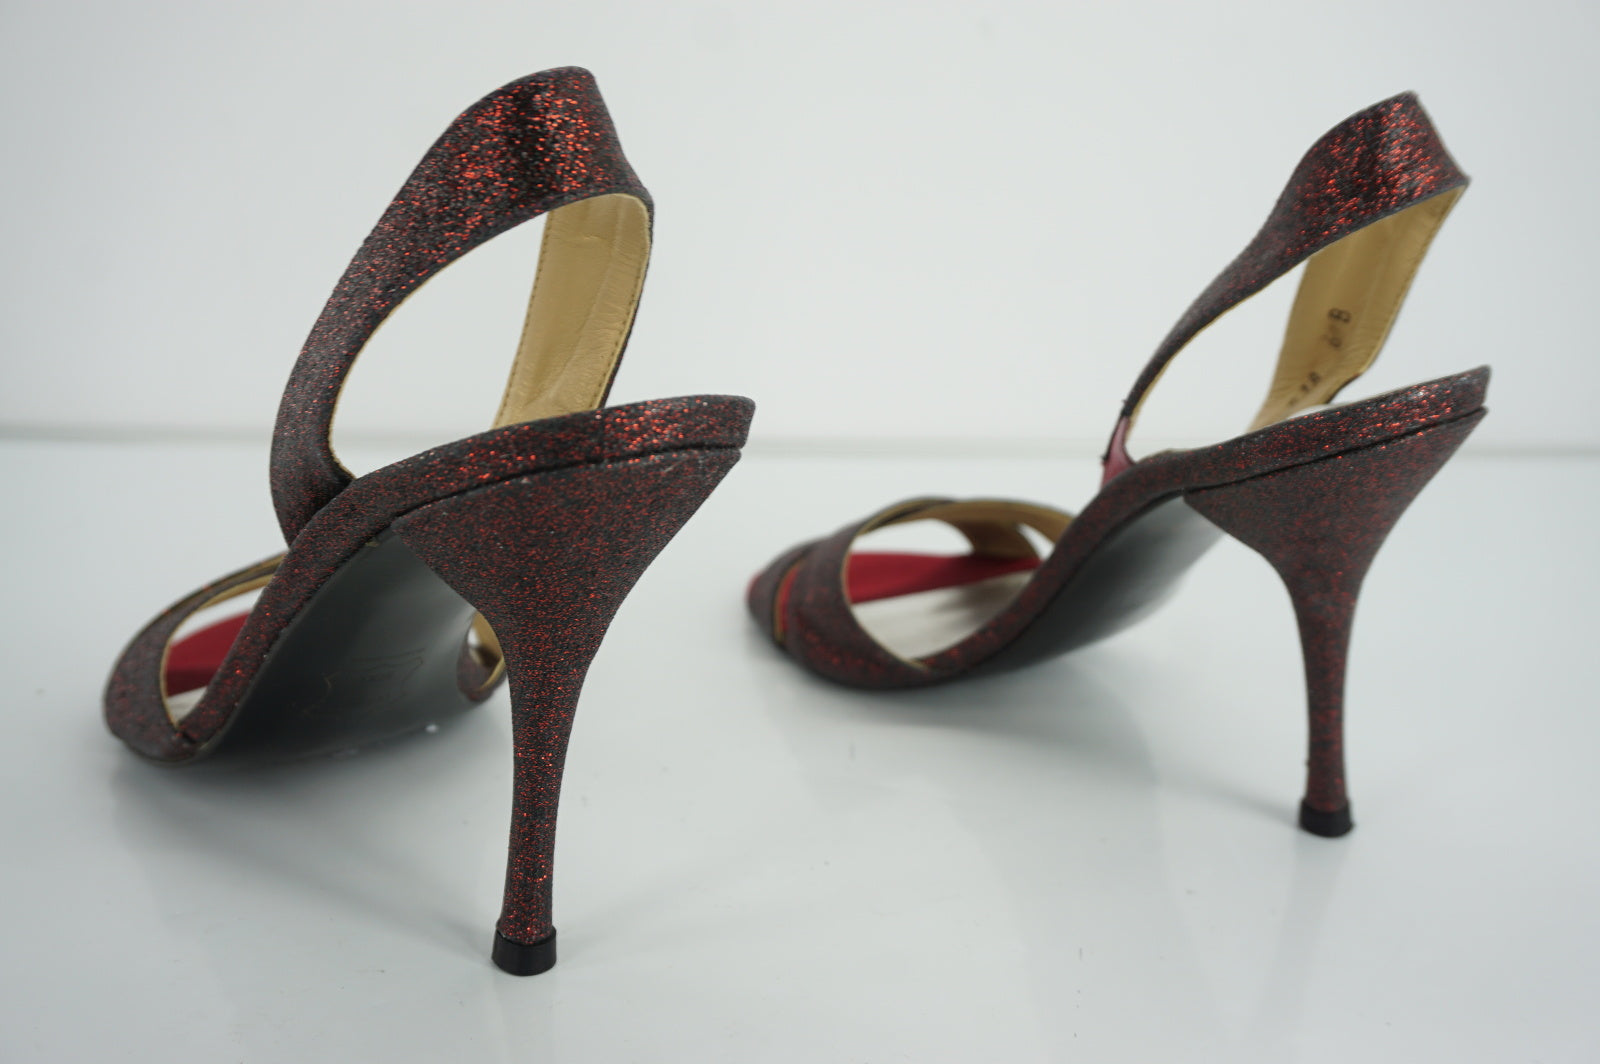 Stuart Weitzman Delovely Red Shimmer Slingback Strappy Sandals SZ 6 New Open Toe